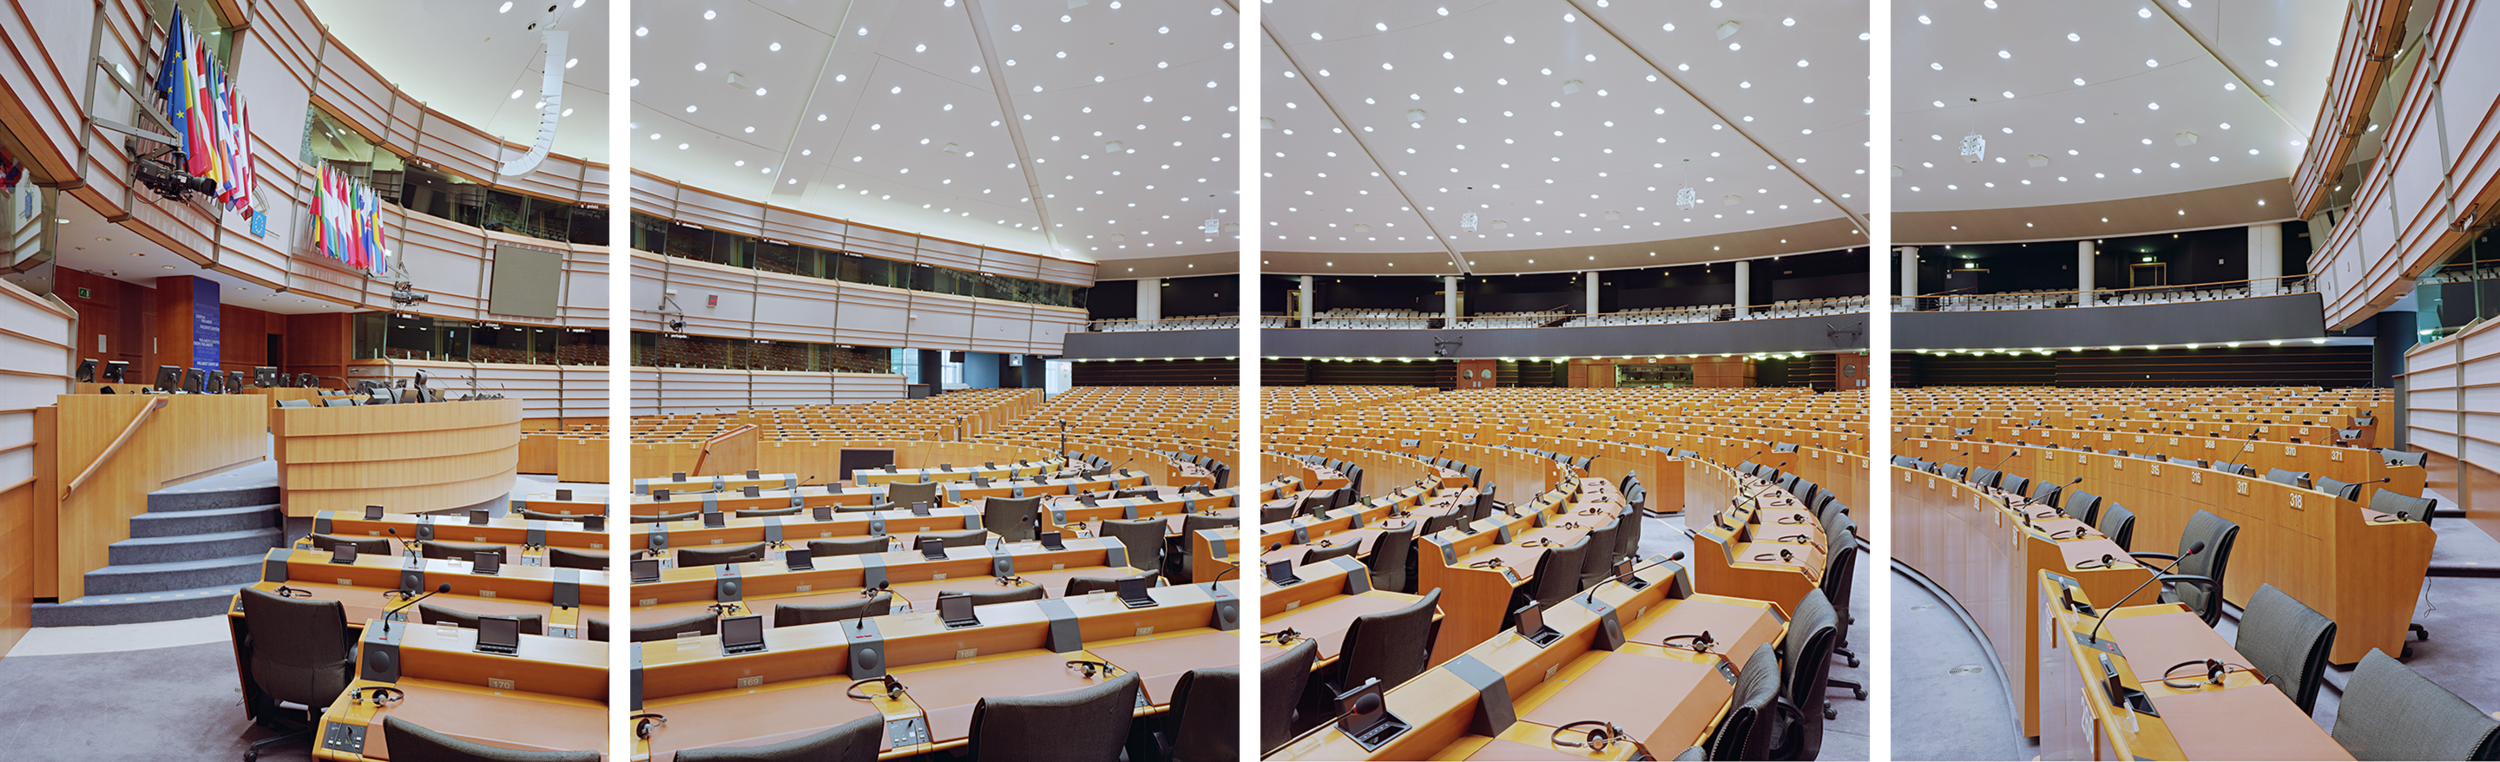 European Parliament in Brussels. Photos by Nico Bick.